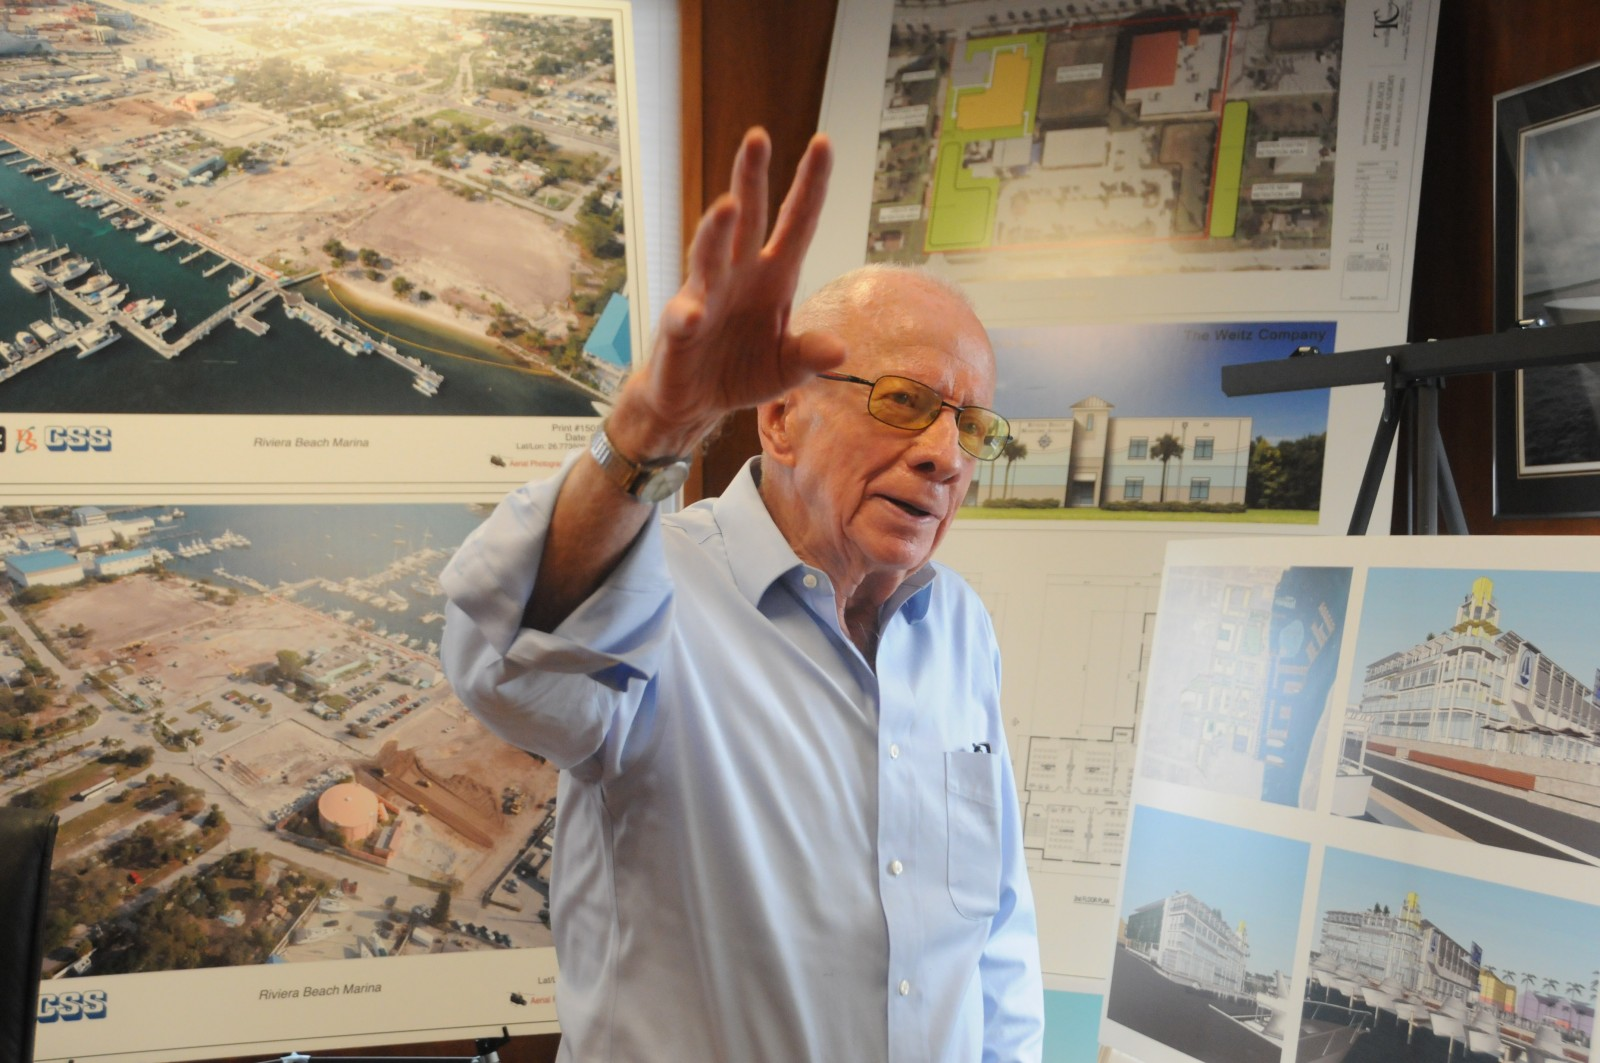 Viking chairman Robert T. Healey, Sr. outlines his company's plan for redevelopment in Riviera Beach. Photo by Suzette Cook.